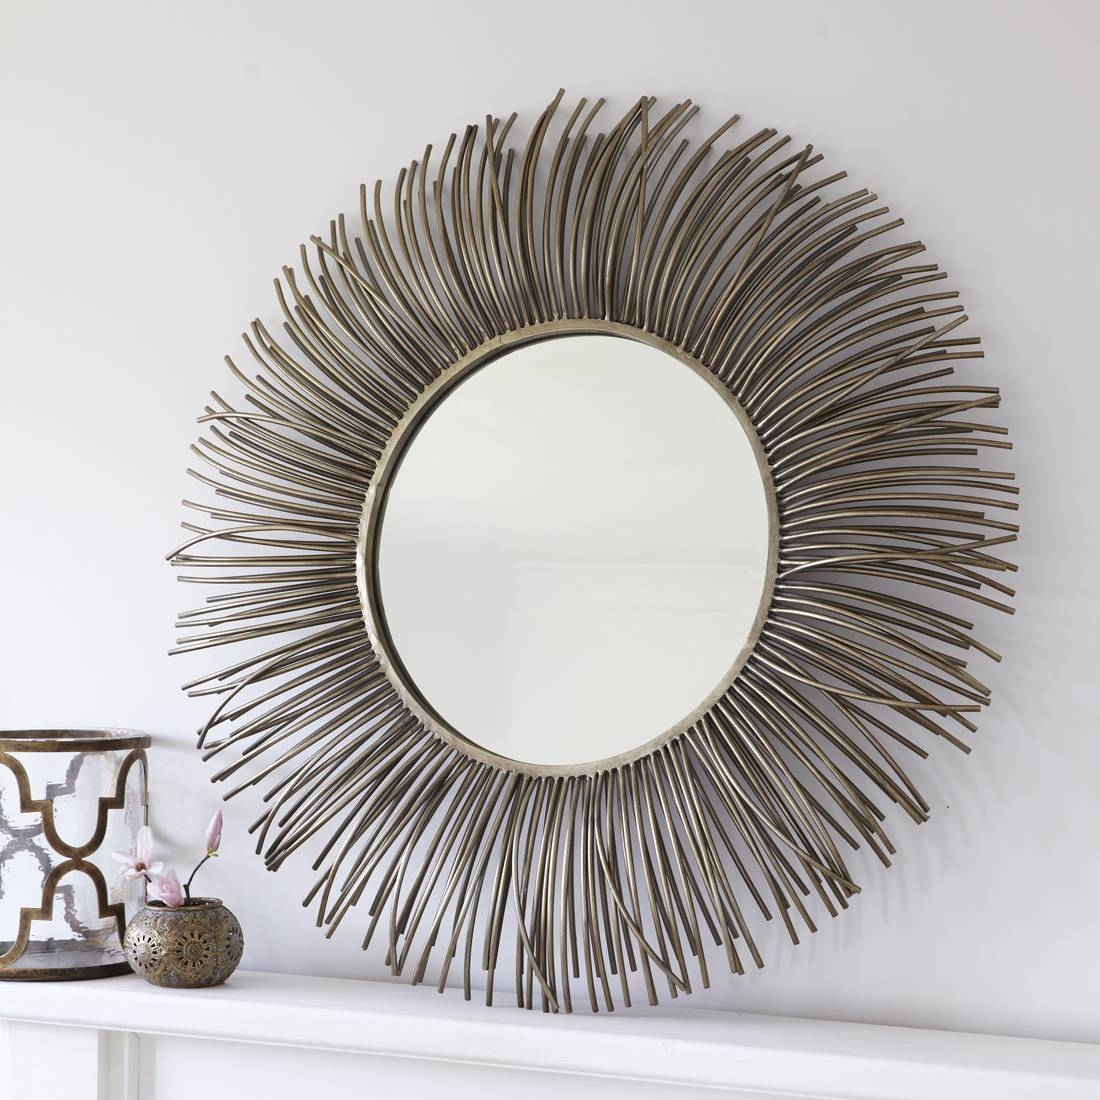 Gold Spiky Sunburst Wall Mirror – Primrose & Plum intended for Champagne Wall Mirrors (Image 6 of 25)